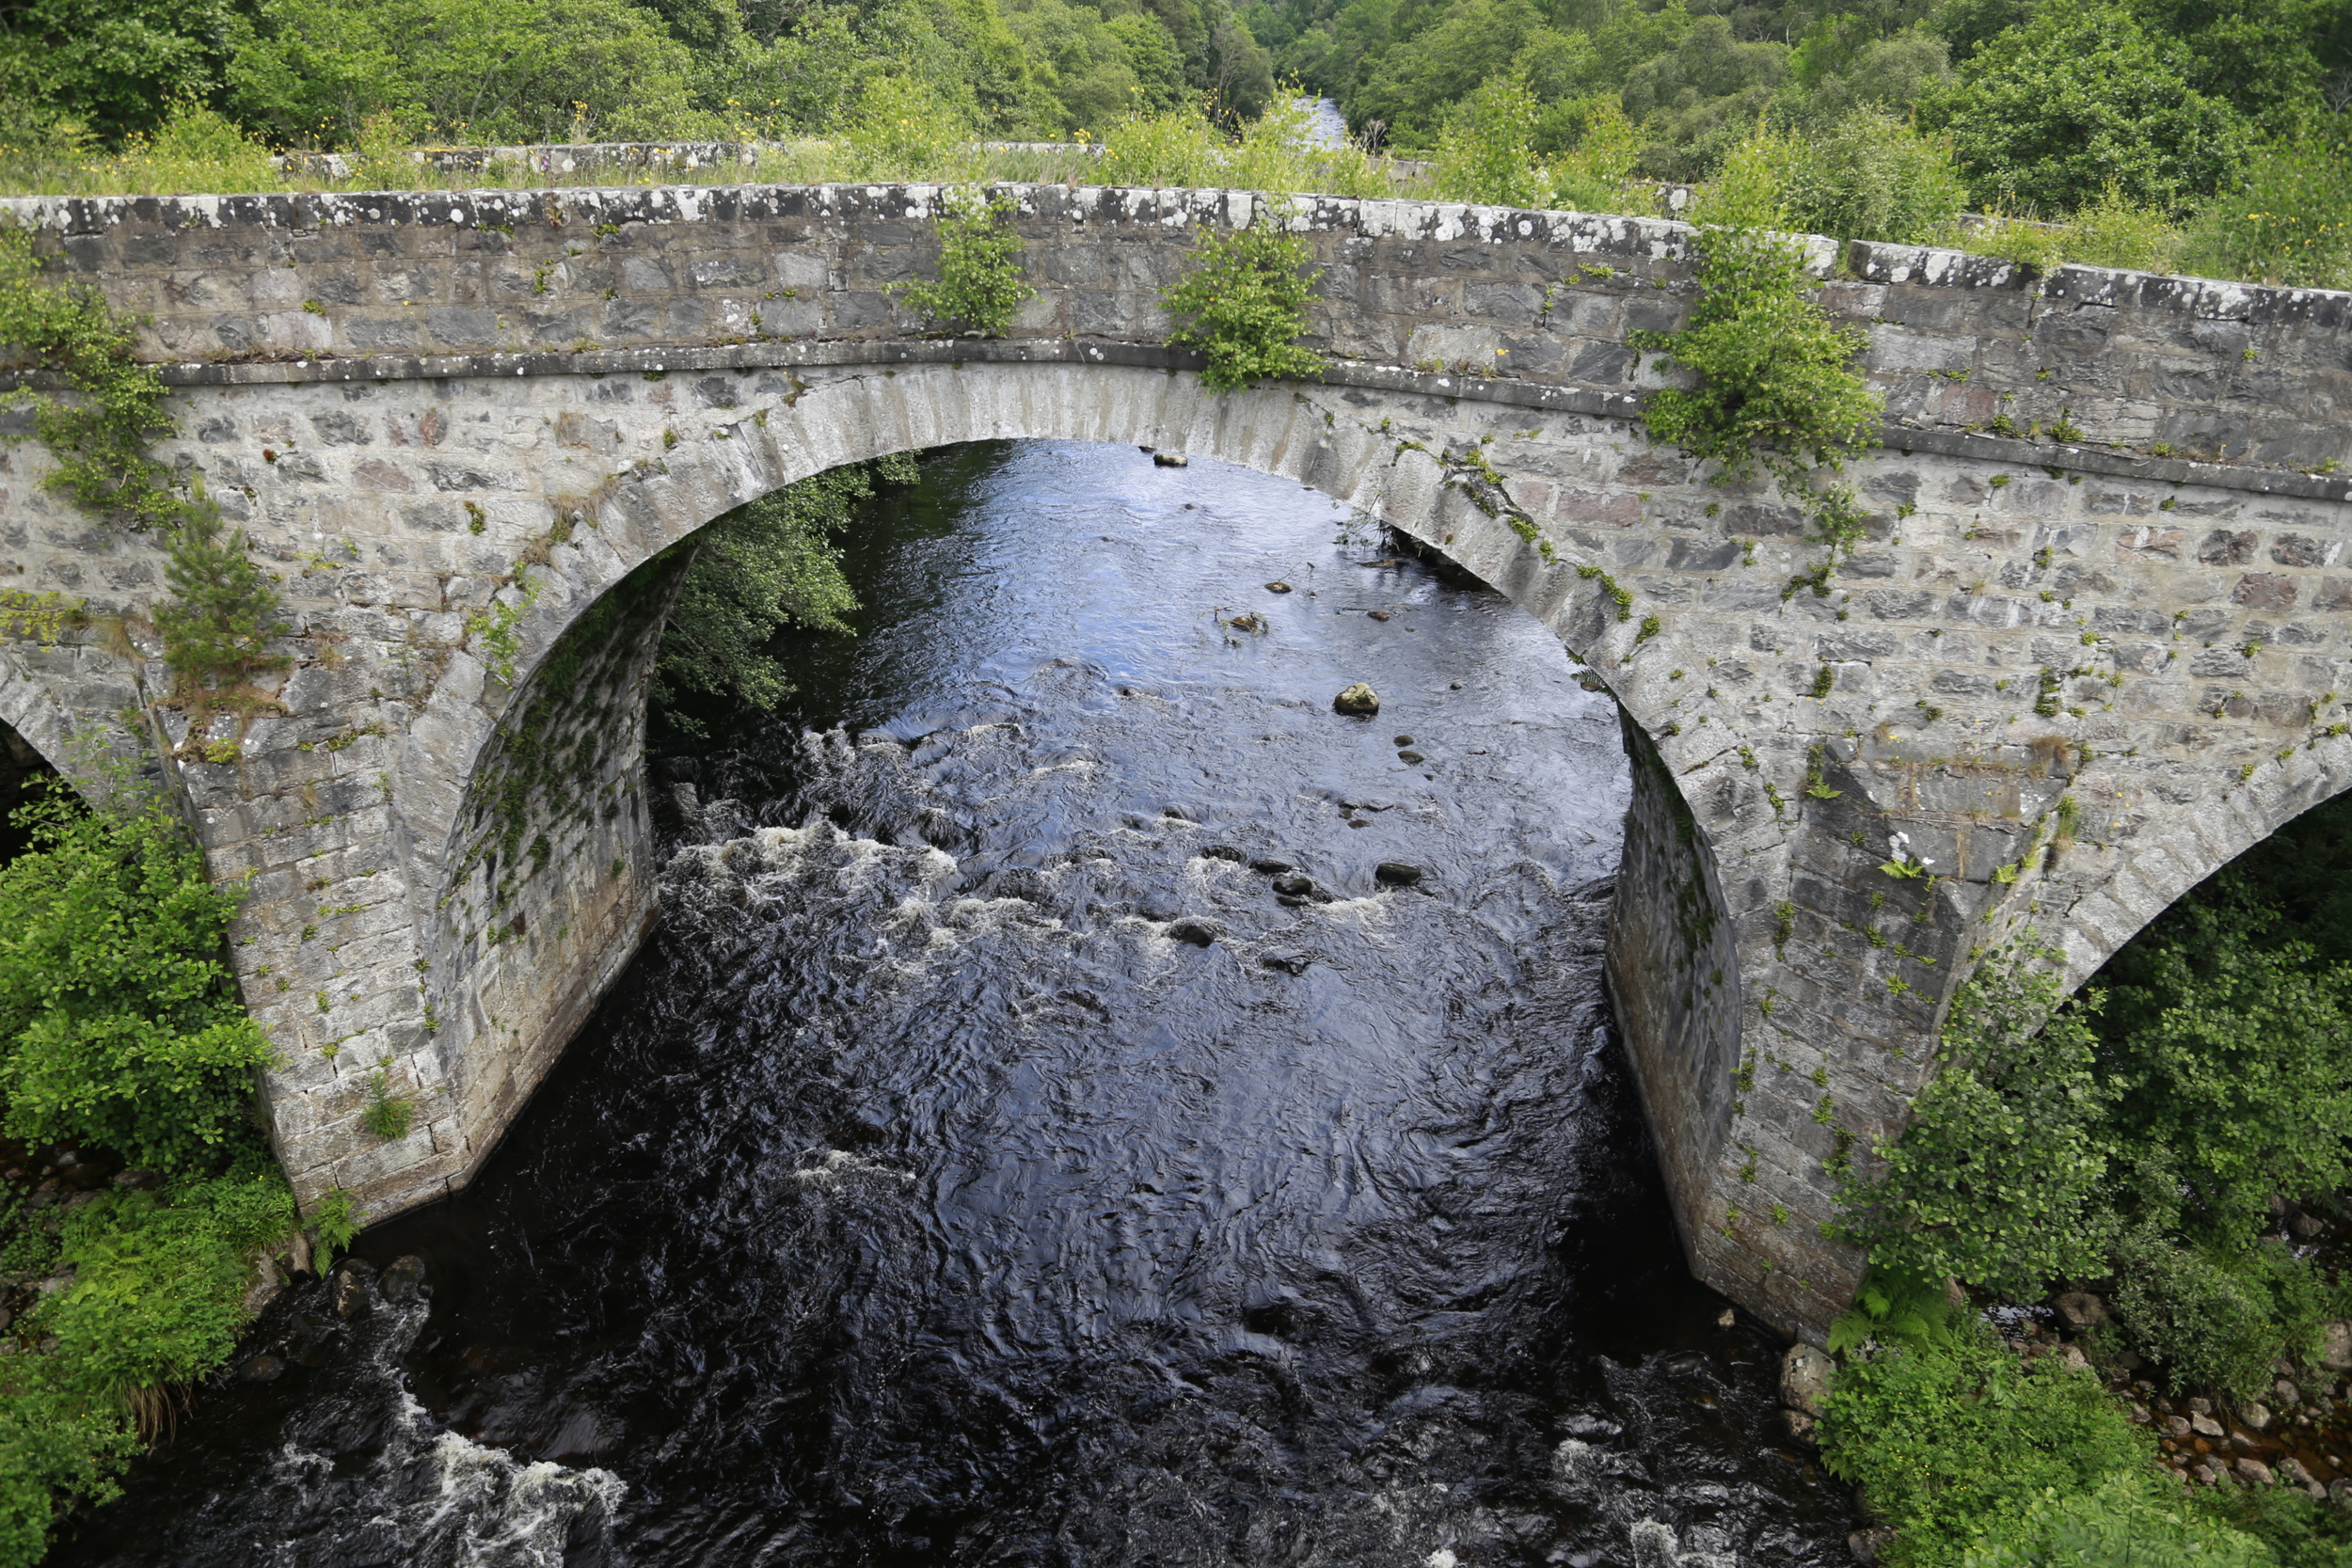 bridge, scotland, river, scenery, touring, tour, tours, travel, UK